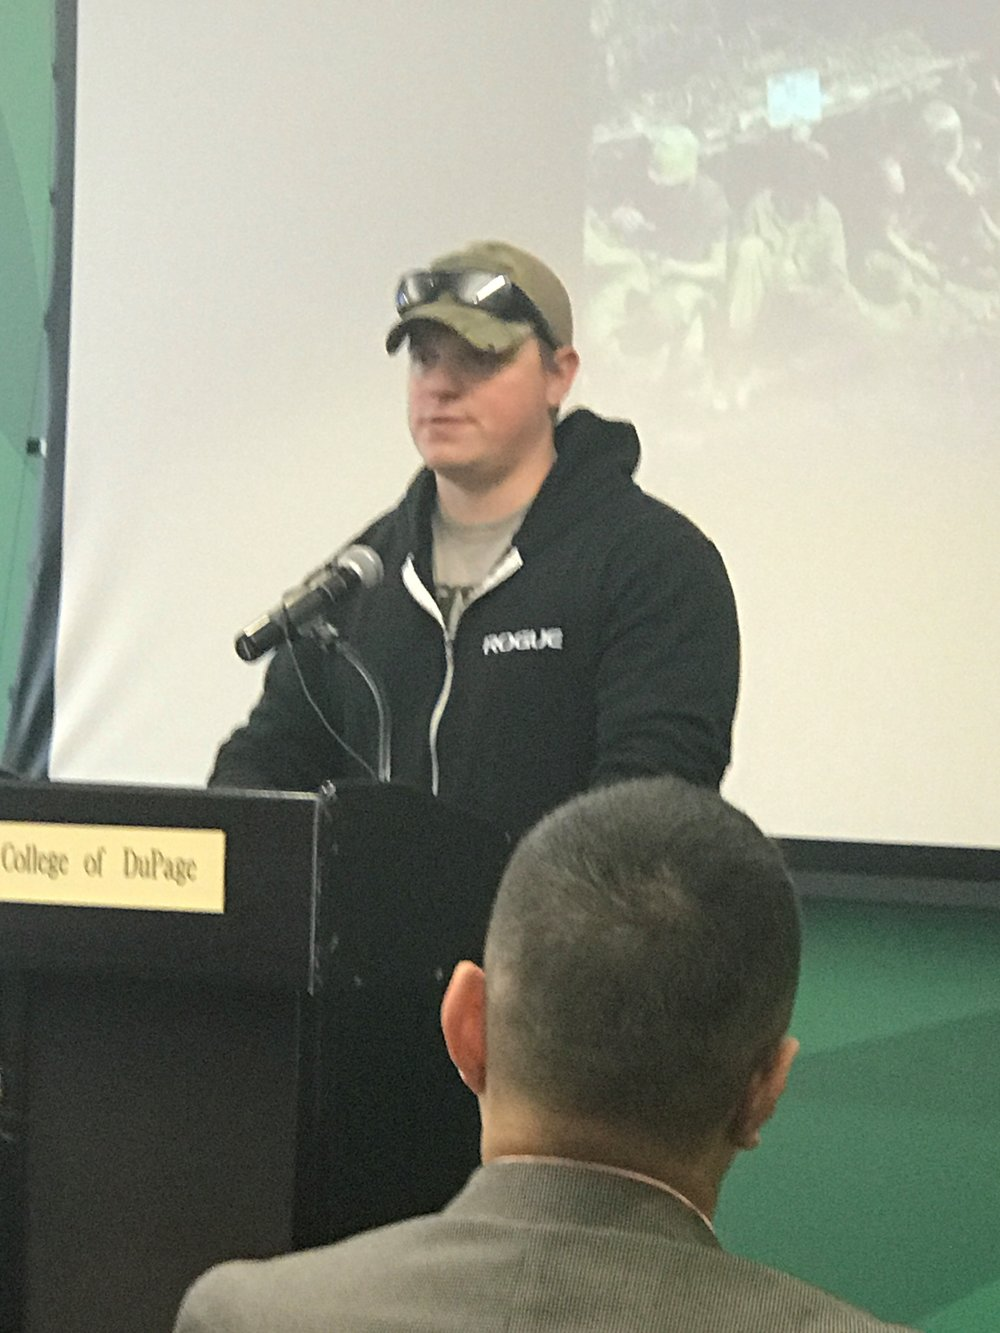 College of DuPage student Veteran Rich Ryan shared a story of his service